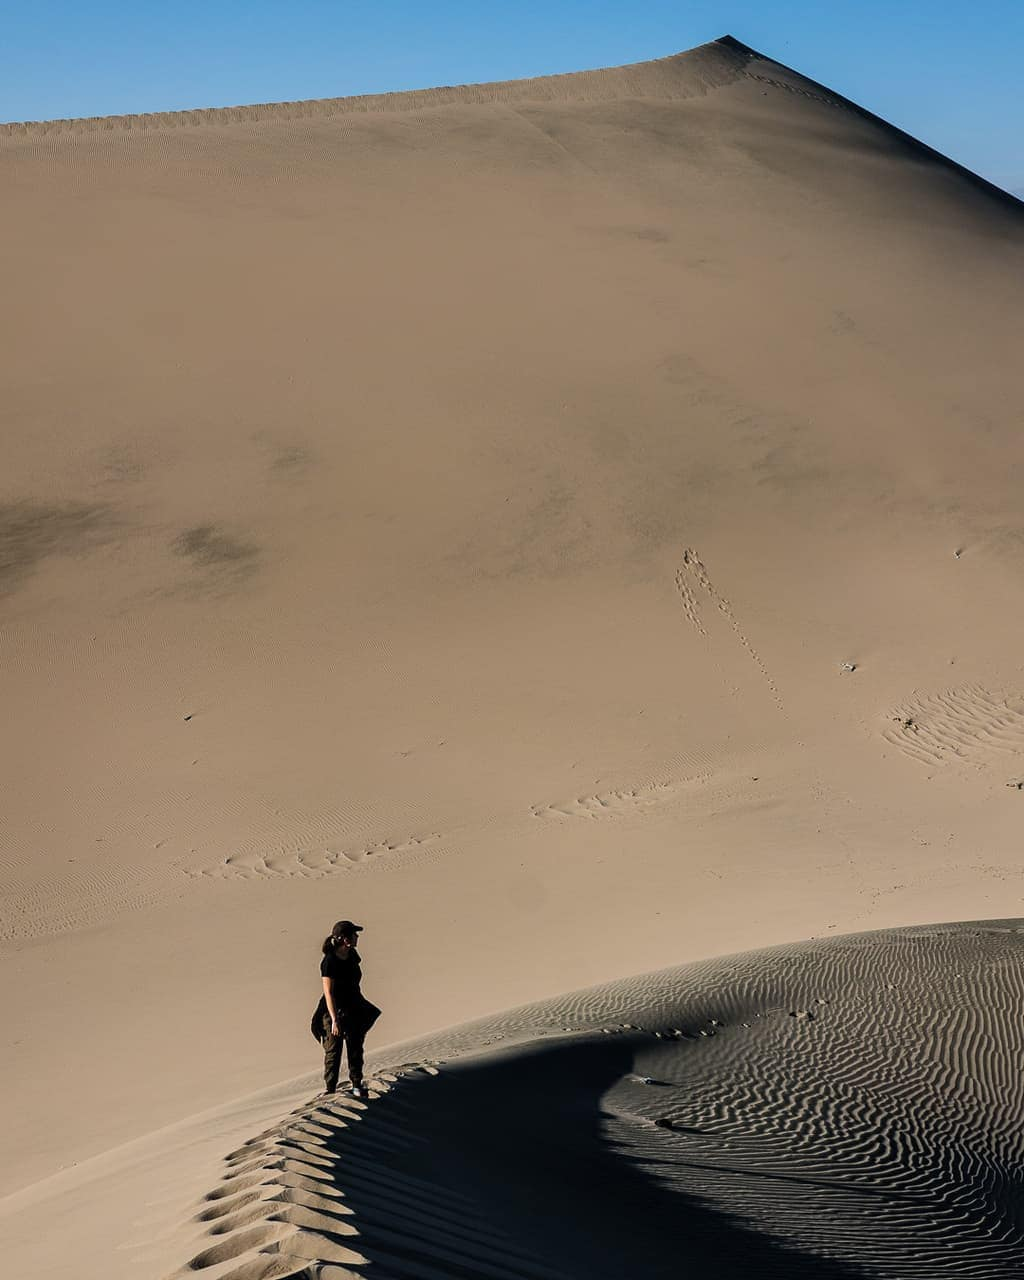 Sand dunes outside of Huacachina, Peru